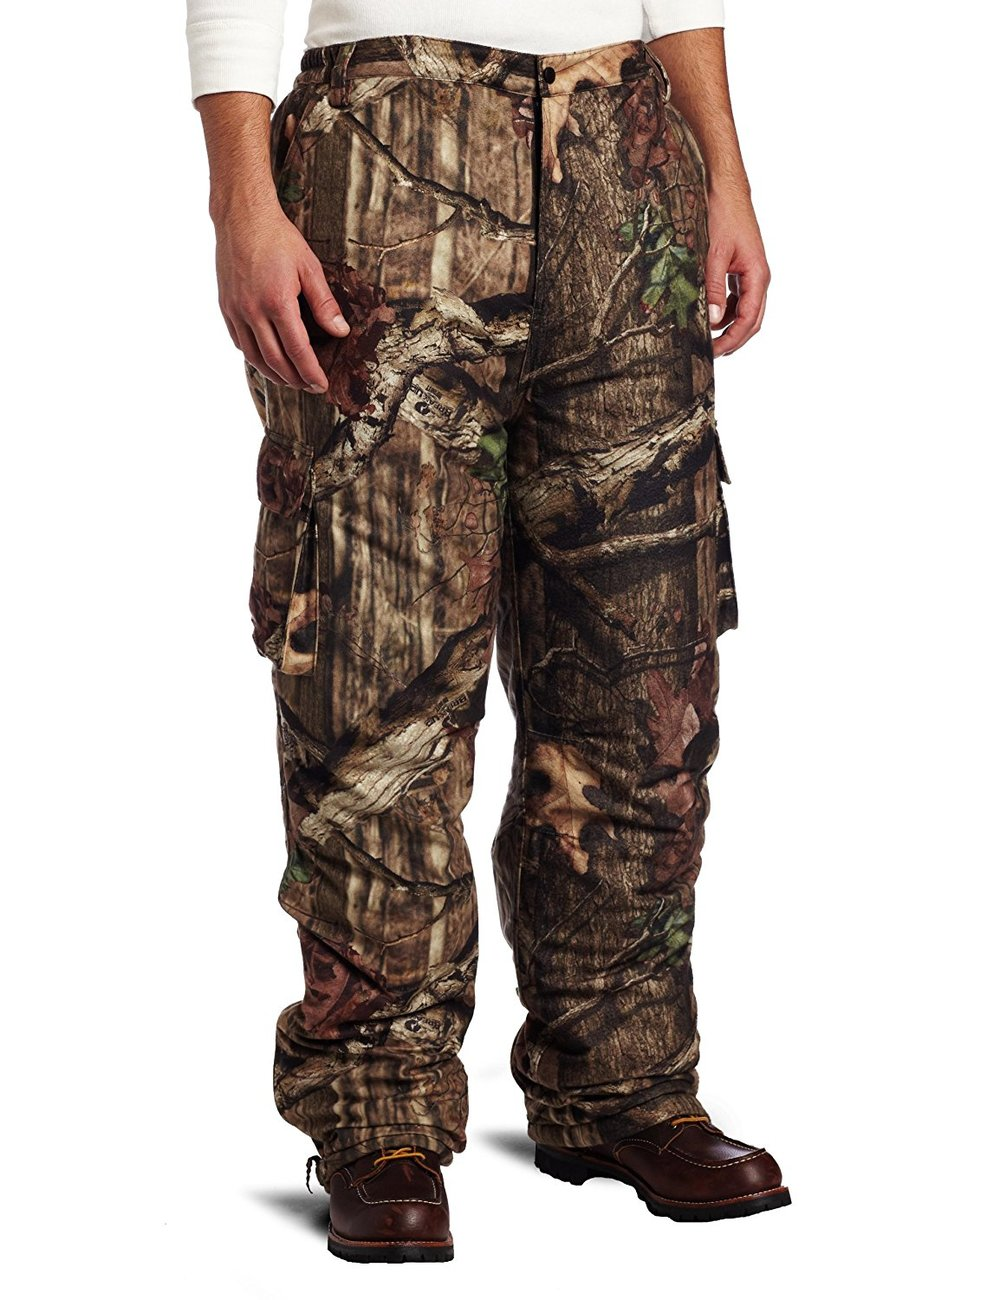 9c05bba15c641 The Best Hunting Pants for All Seasons in 2018 — Outdoorsman